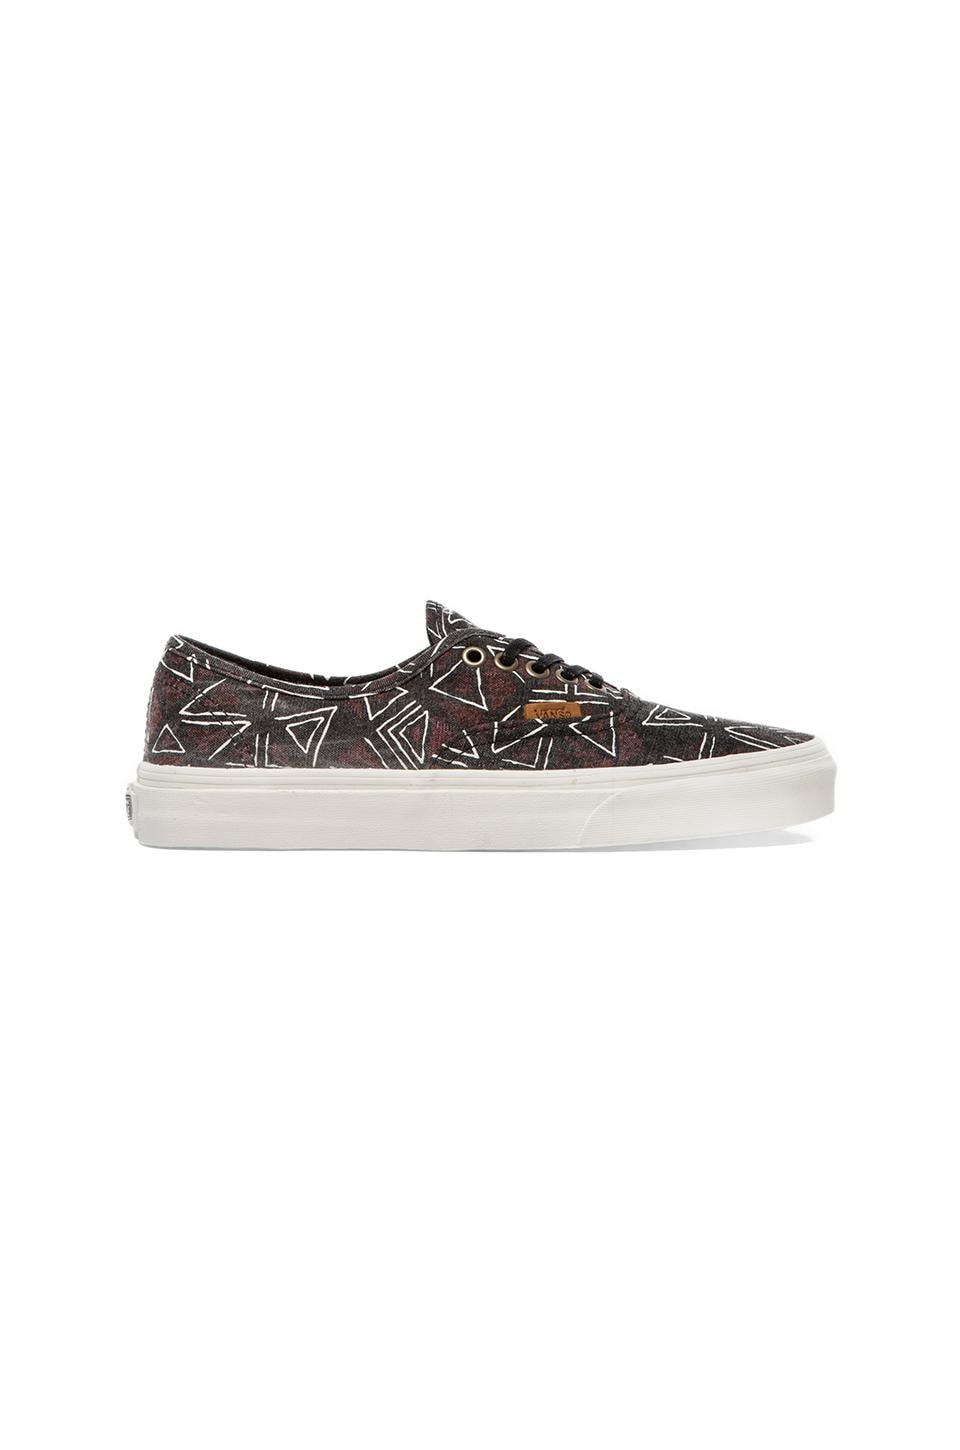 Vans California Authentic Geo Tribe in Black